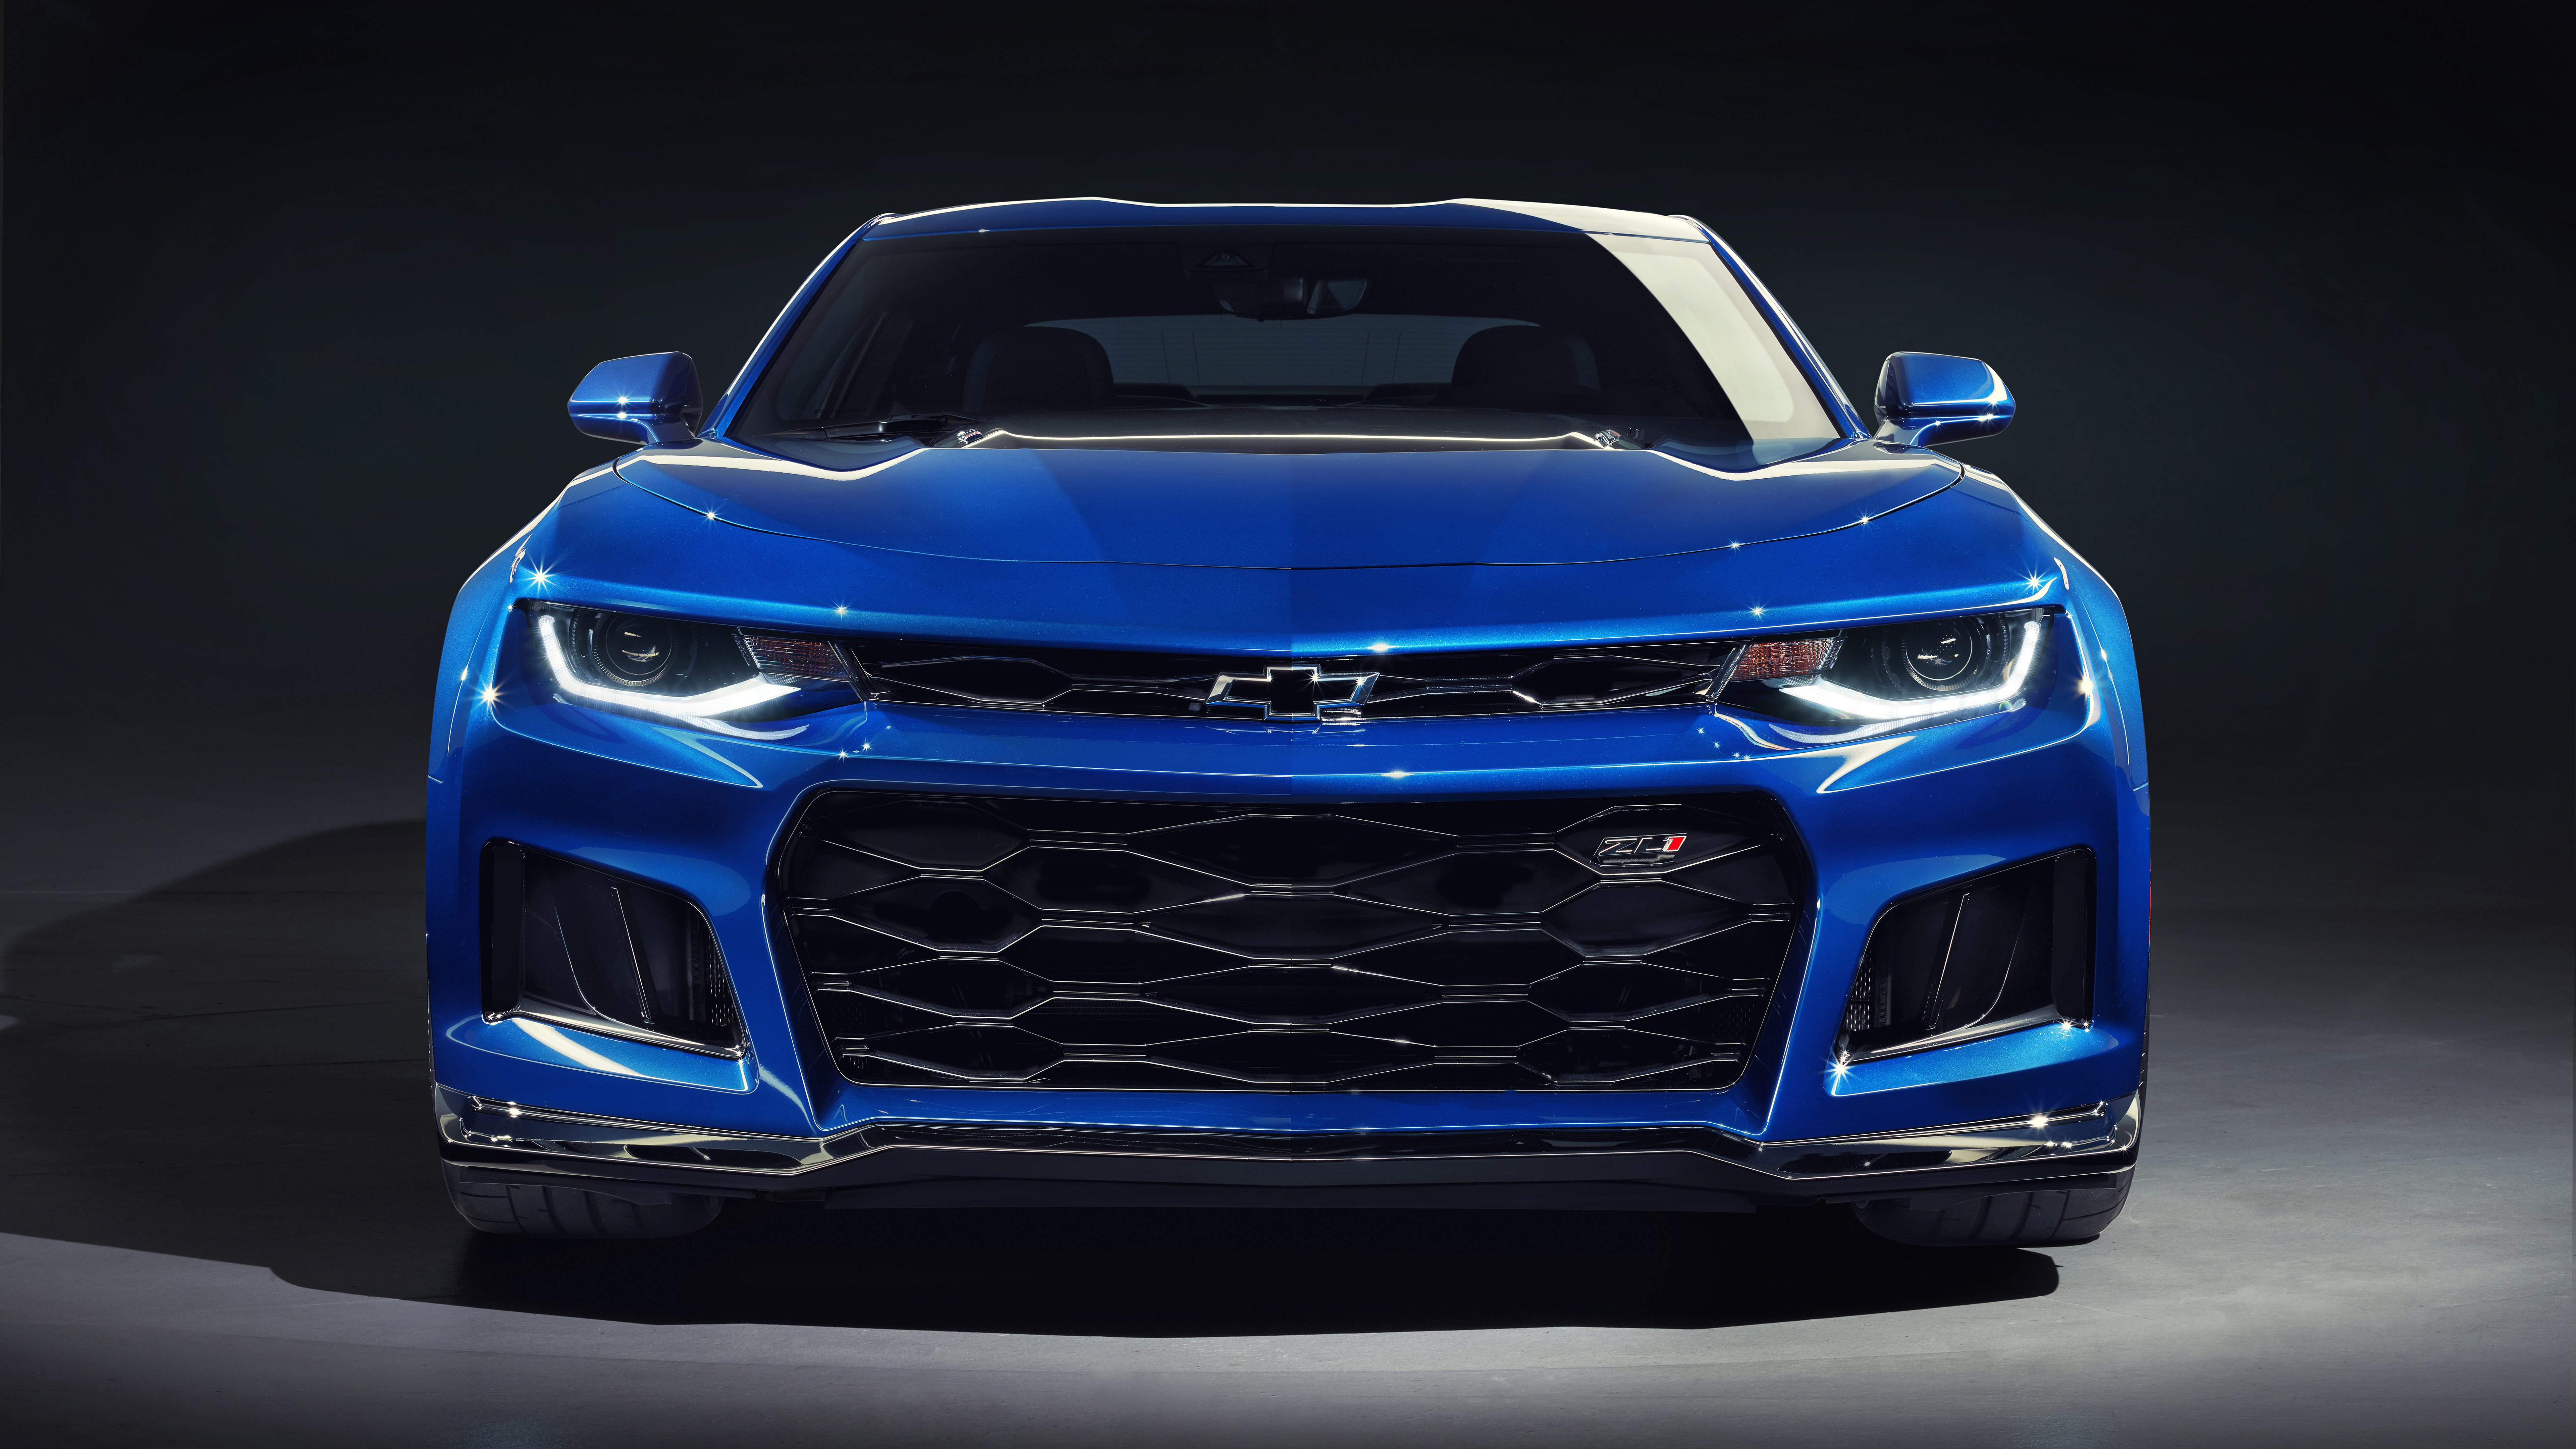 Wallpaper Chevrolet Camaro cars front view x UHD K Picture